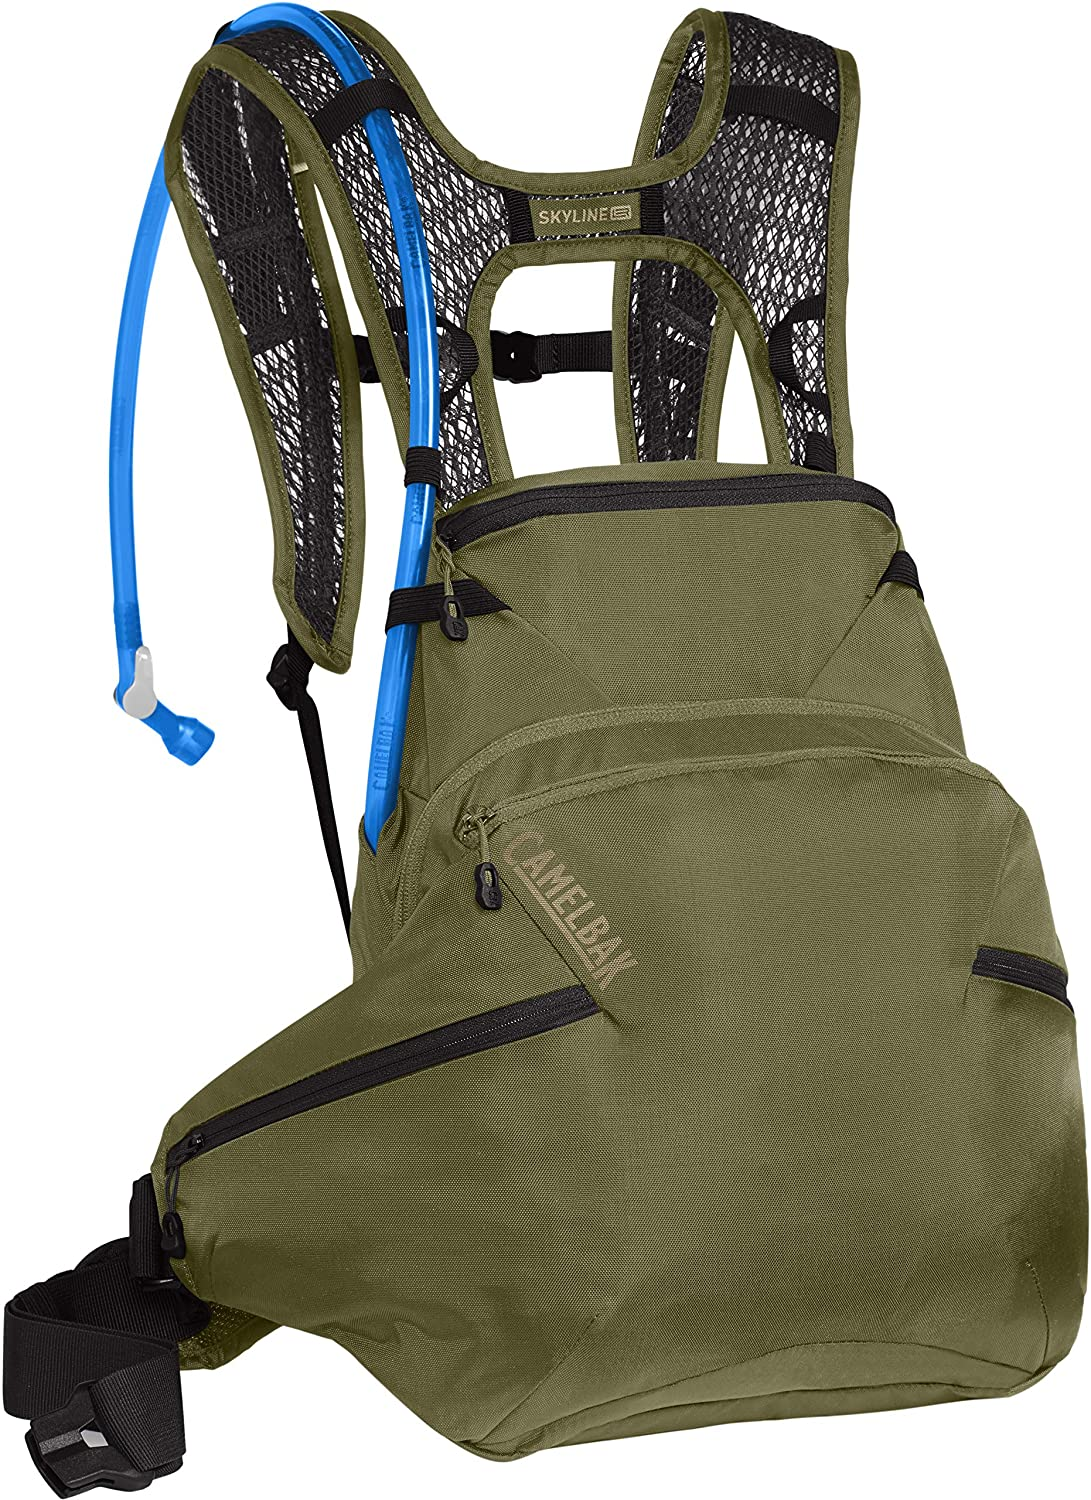 CamelBak Skyline LR 10 Bike Hydration Pack - Crux Lumbar Reservoir - 100 oz